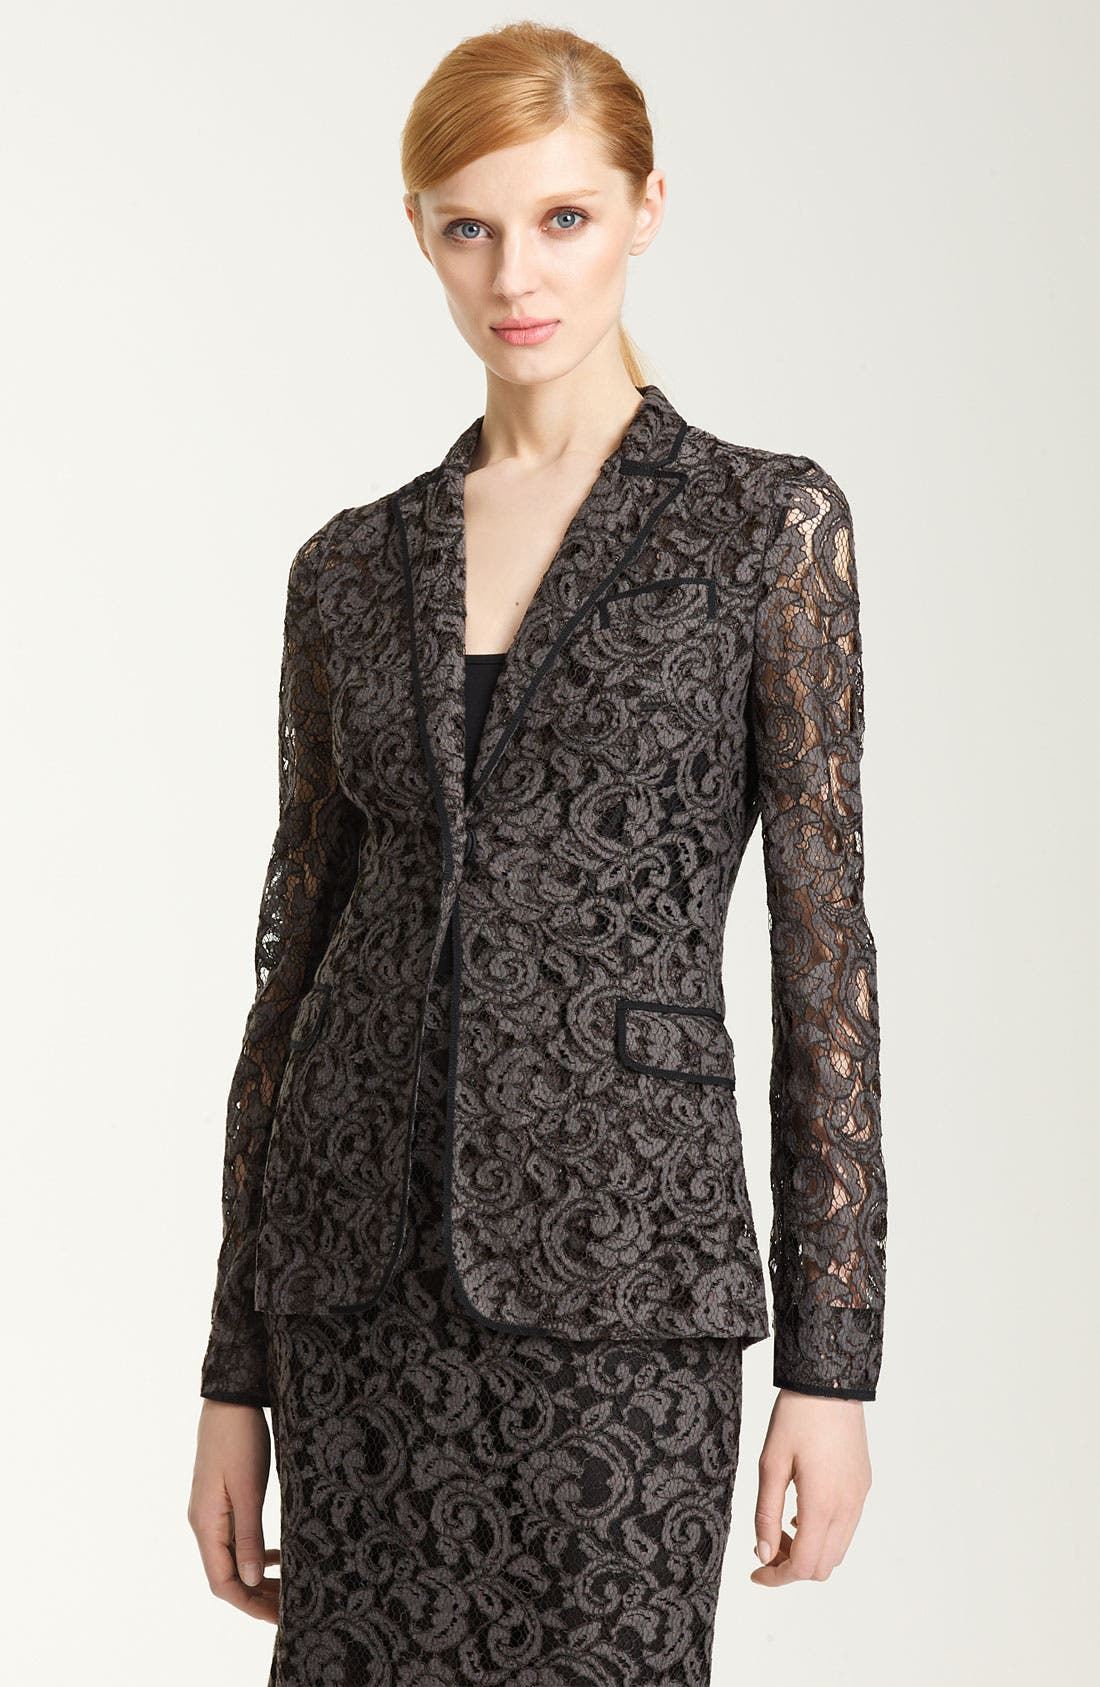 Alternate Image 1 Selected - Moschino Cheap & Chic Lace Jacket